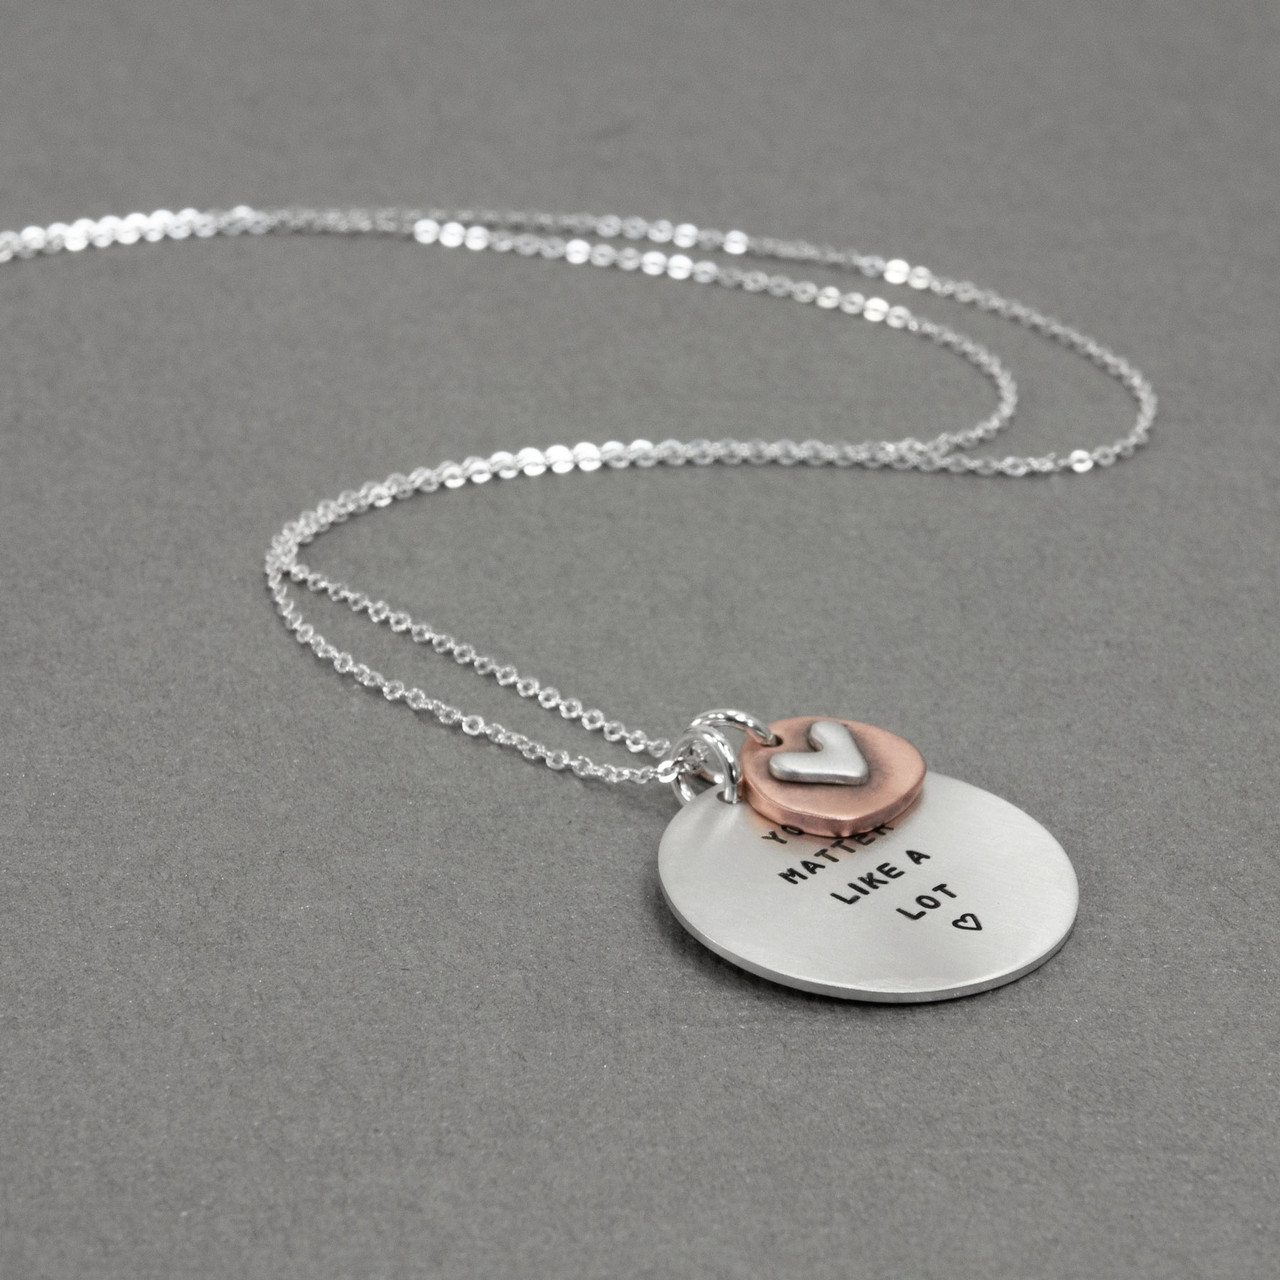 Memorial silver hand stamped necklace shown from the side, with a copper and silver heart